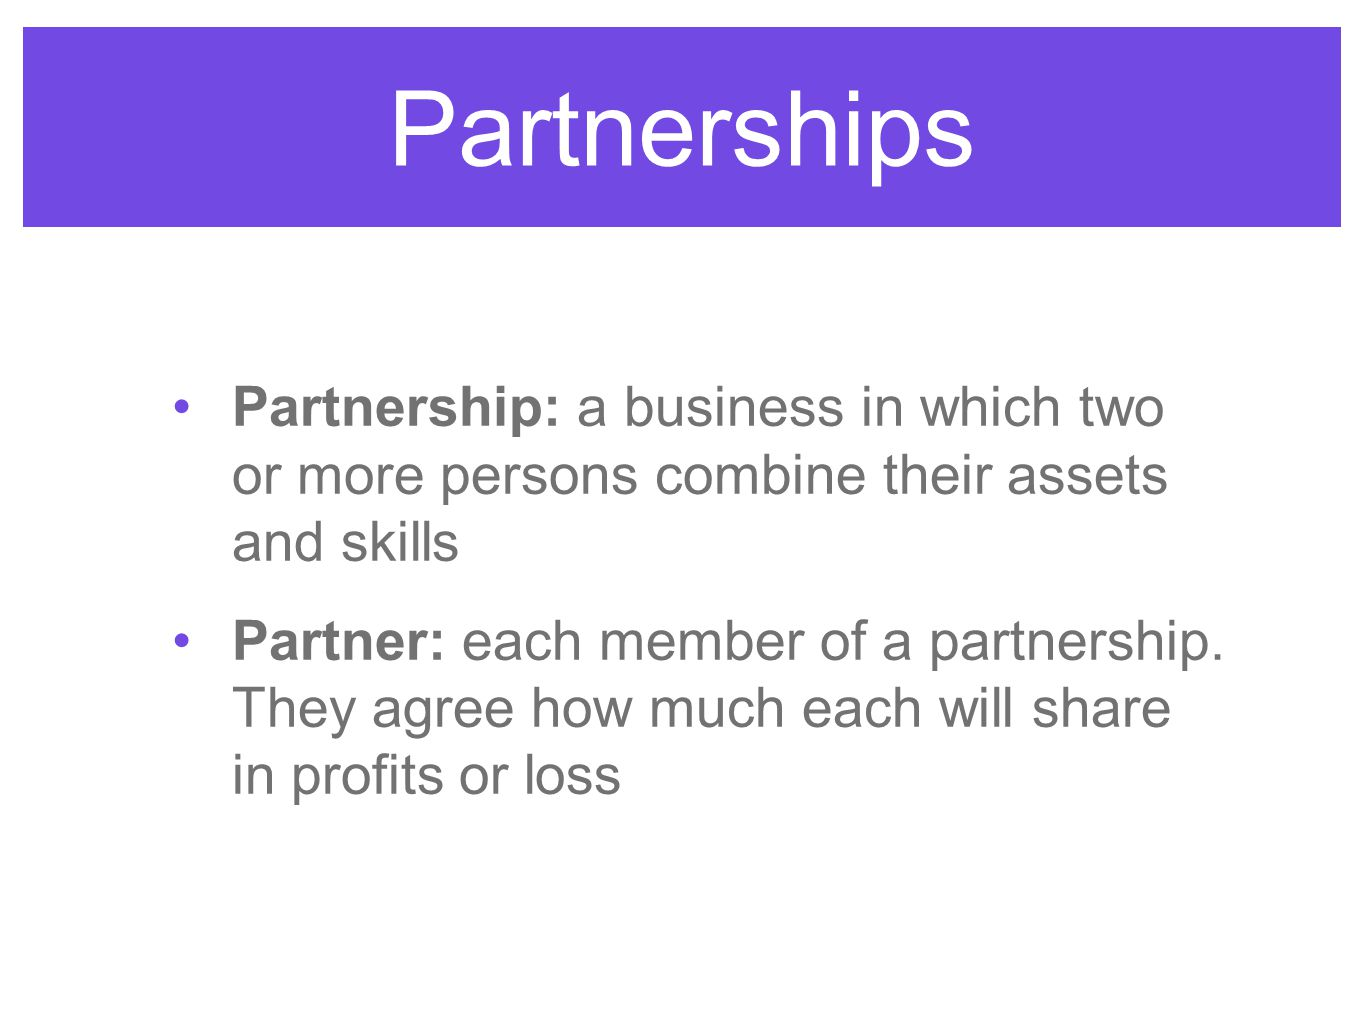 Partnerships Partnership: a business in which two or more persons combine their assets and skills.